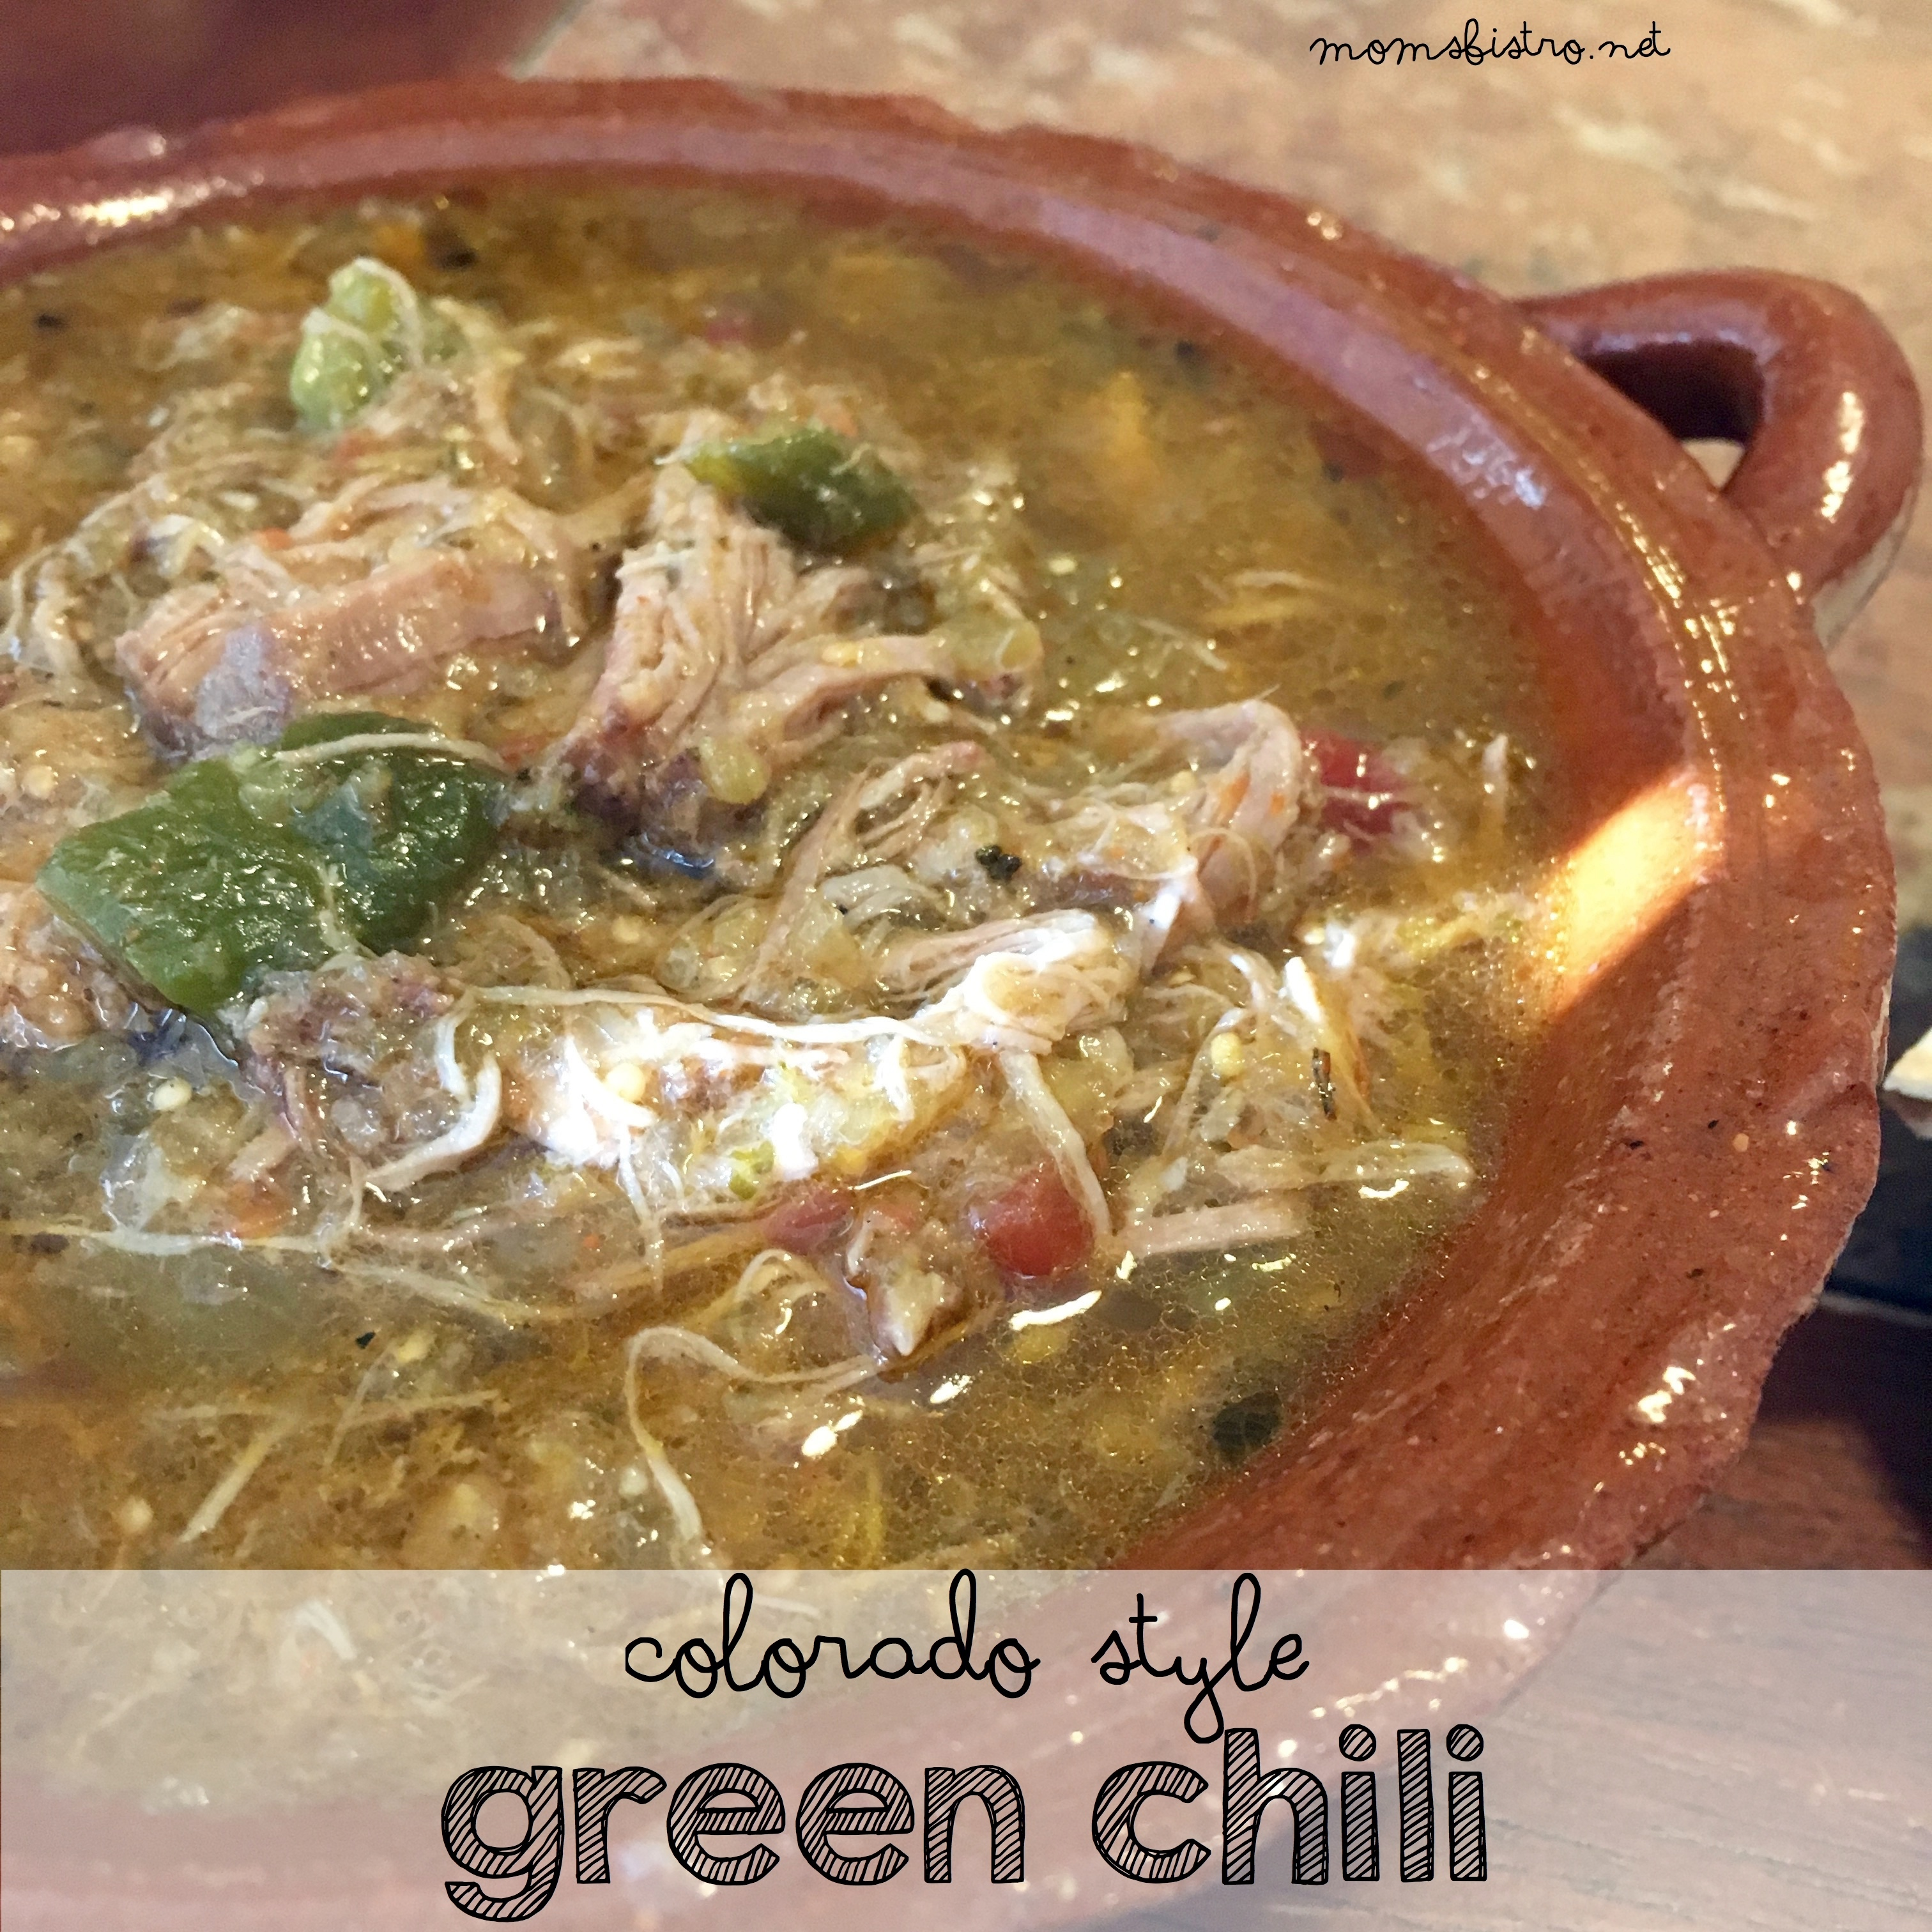 Enjoy A Taste of Colorado with This Authentic Colorado Style Green Chili Recipe!